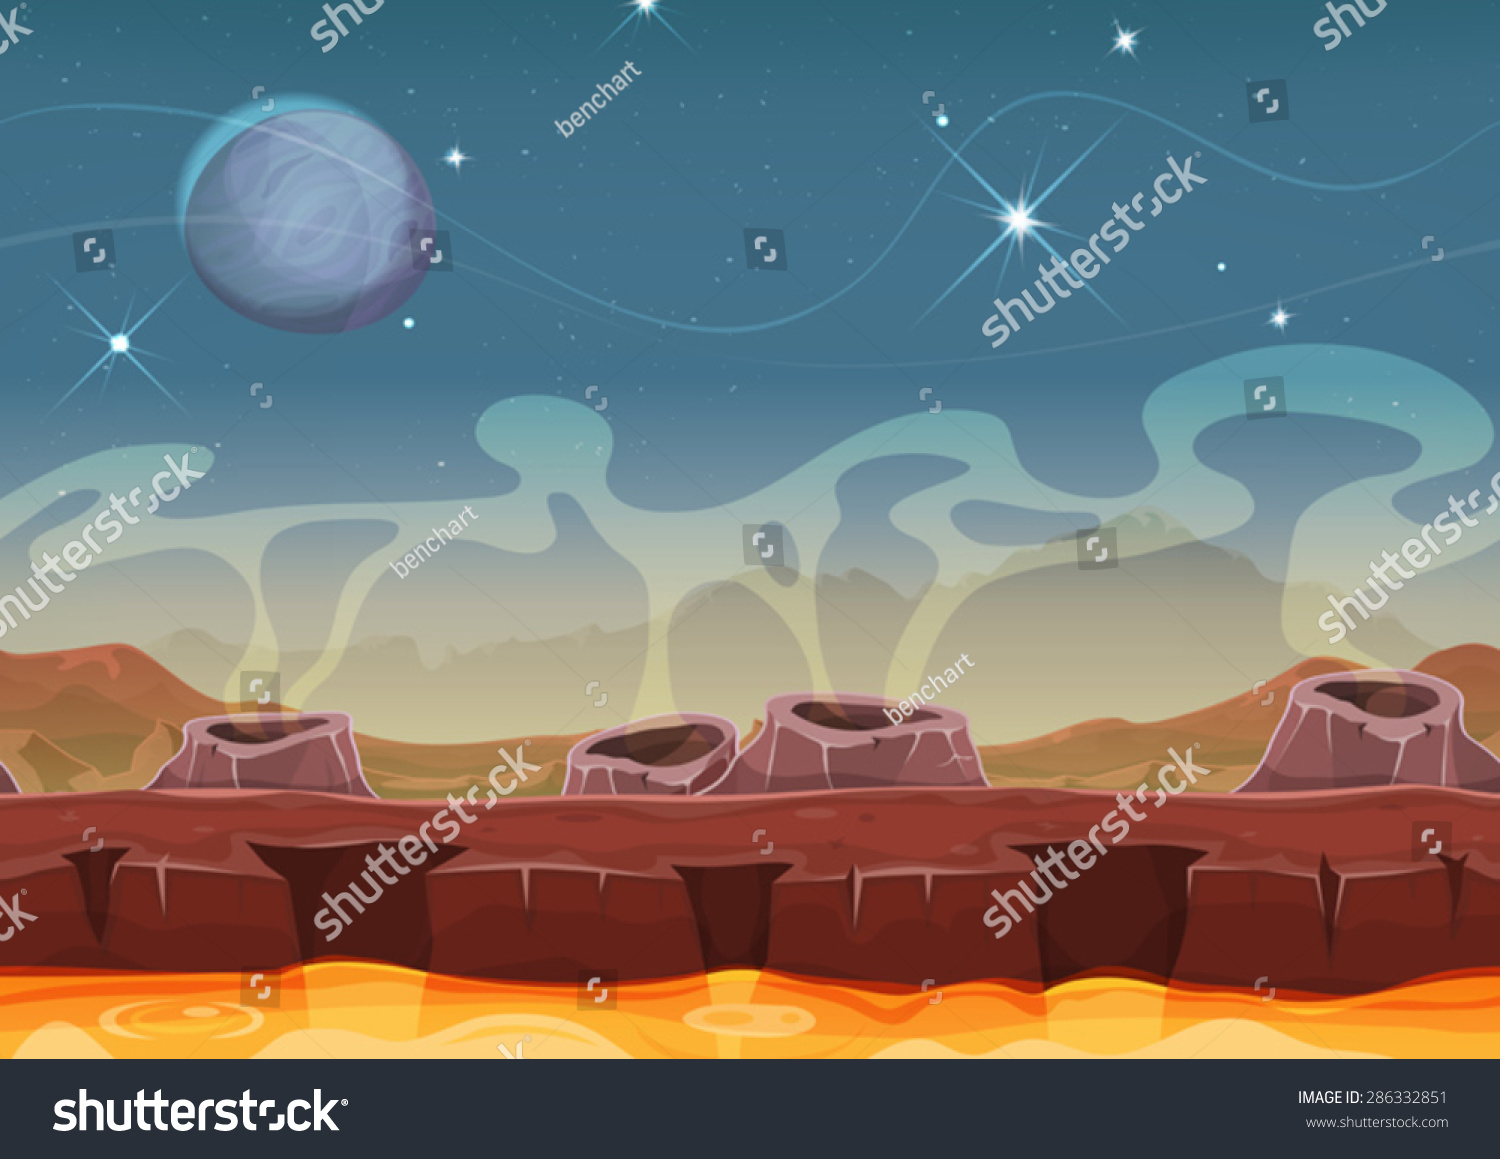 sci fi landscape alien planets - photo #27